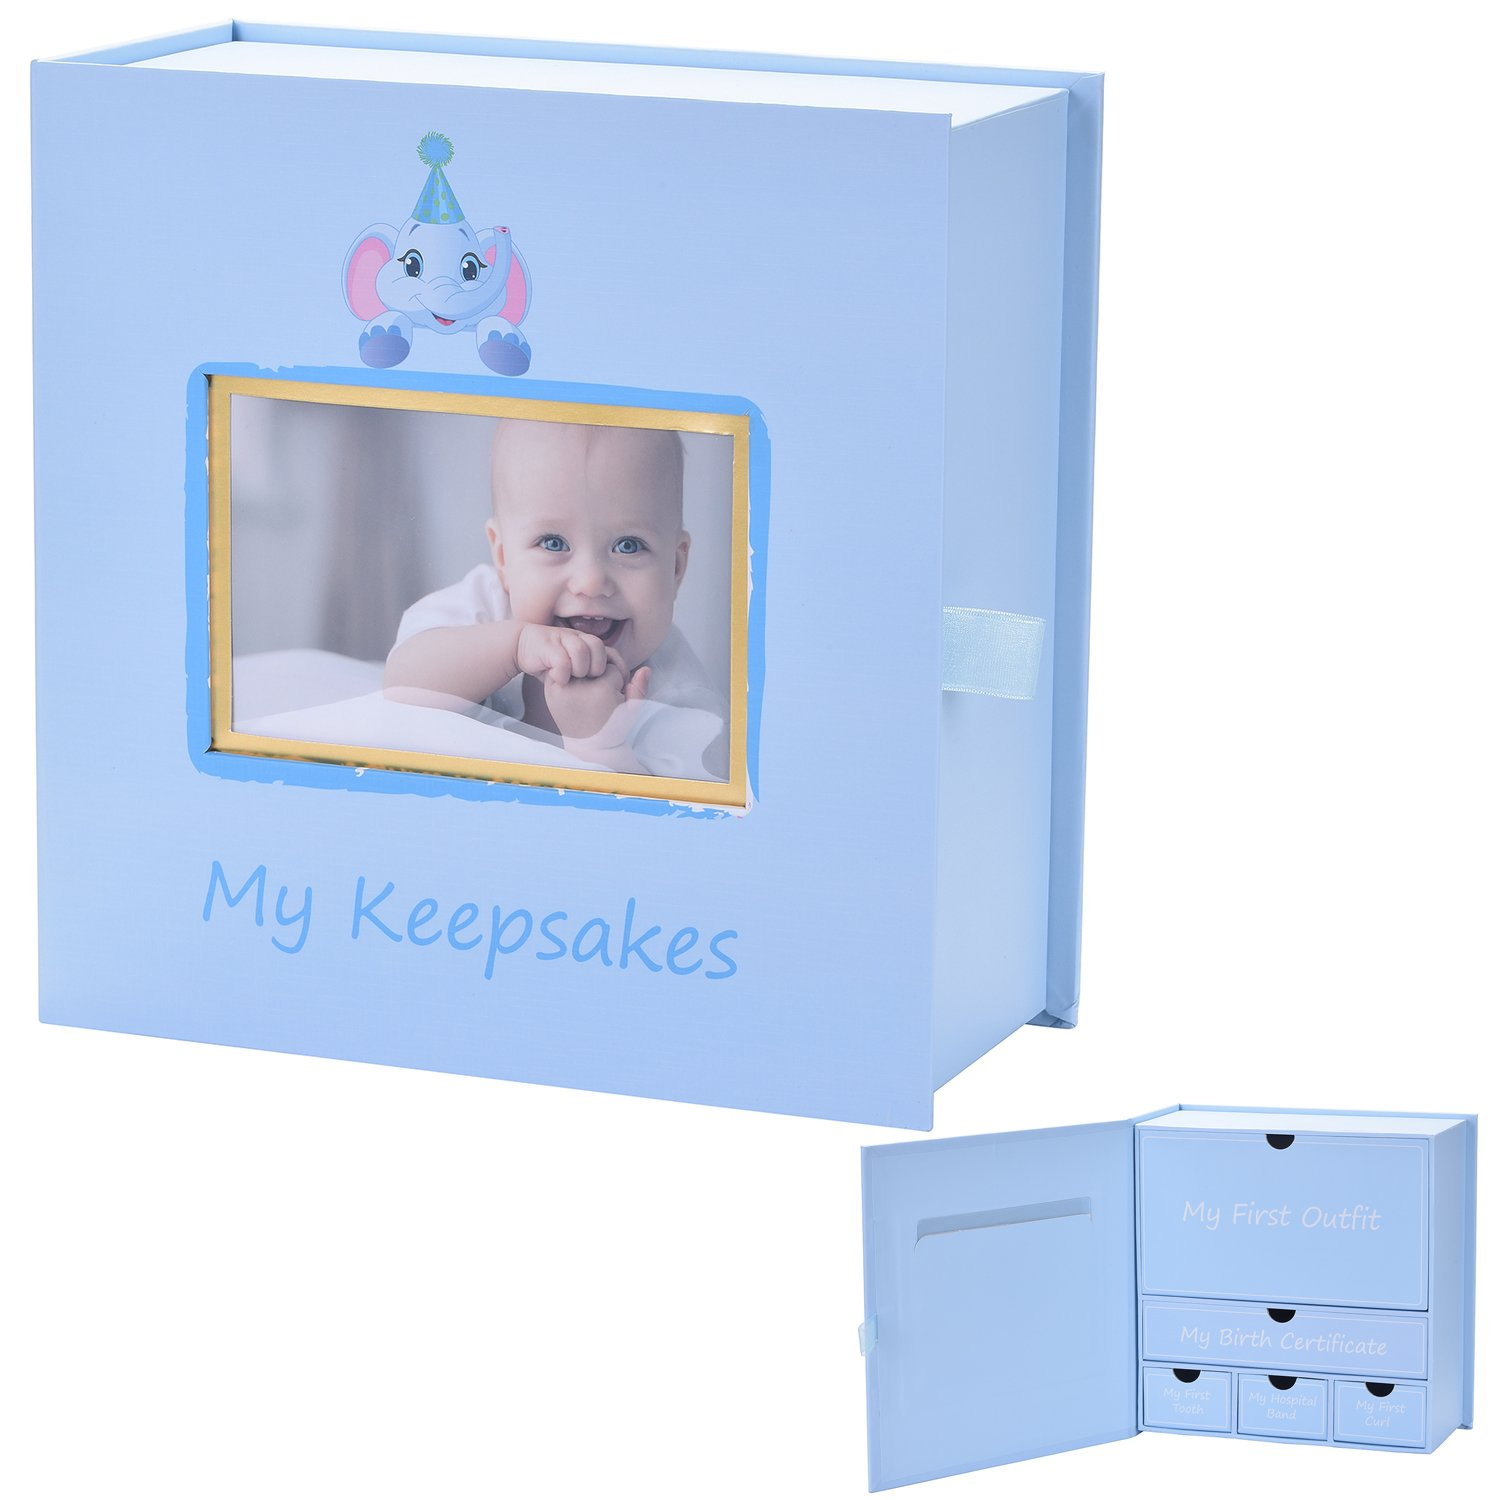 Baby Keepsake Box, First Year Baby Memory Box Set: Record Your Girls or Boys First Mementoes! Babies Keepsake Journal box, Gift Box for Newborn Boy or Girl by BBX (Image #1)